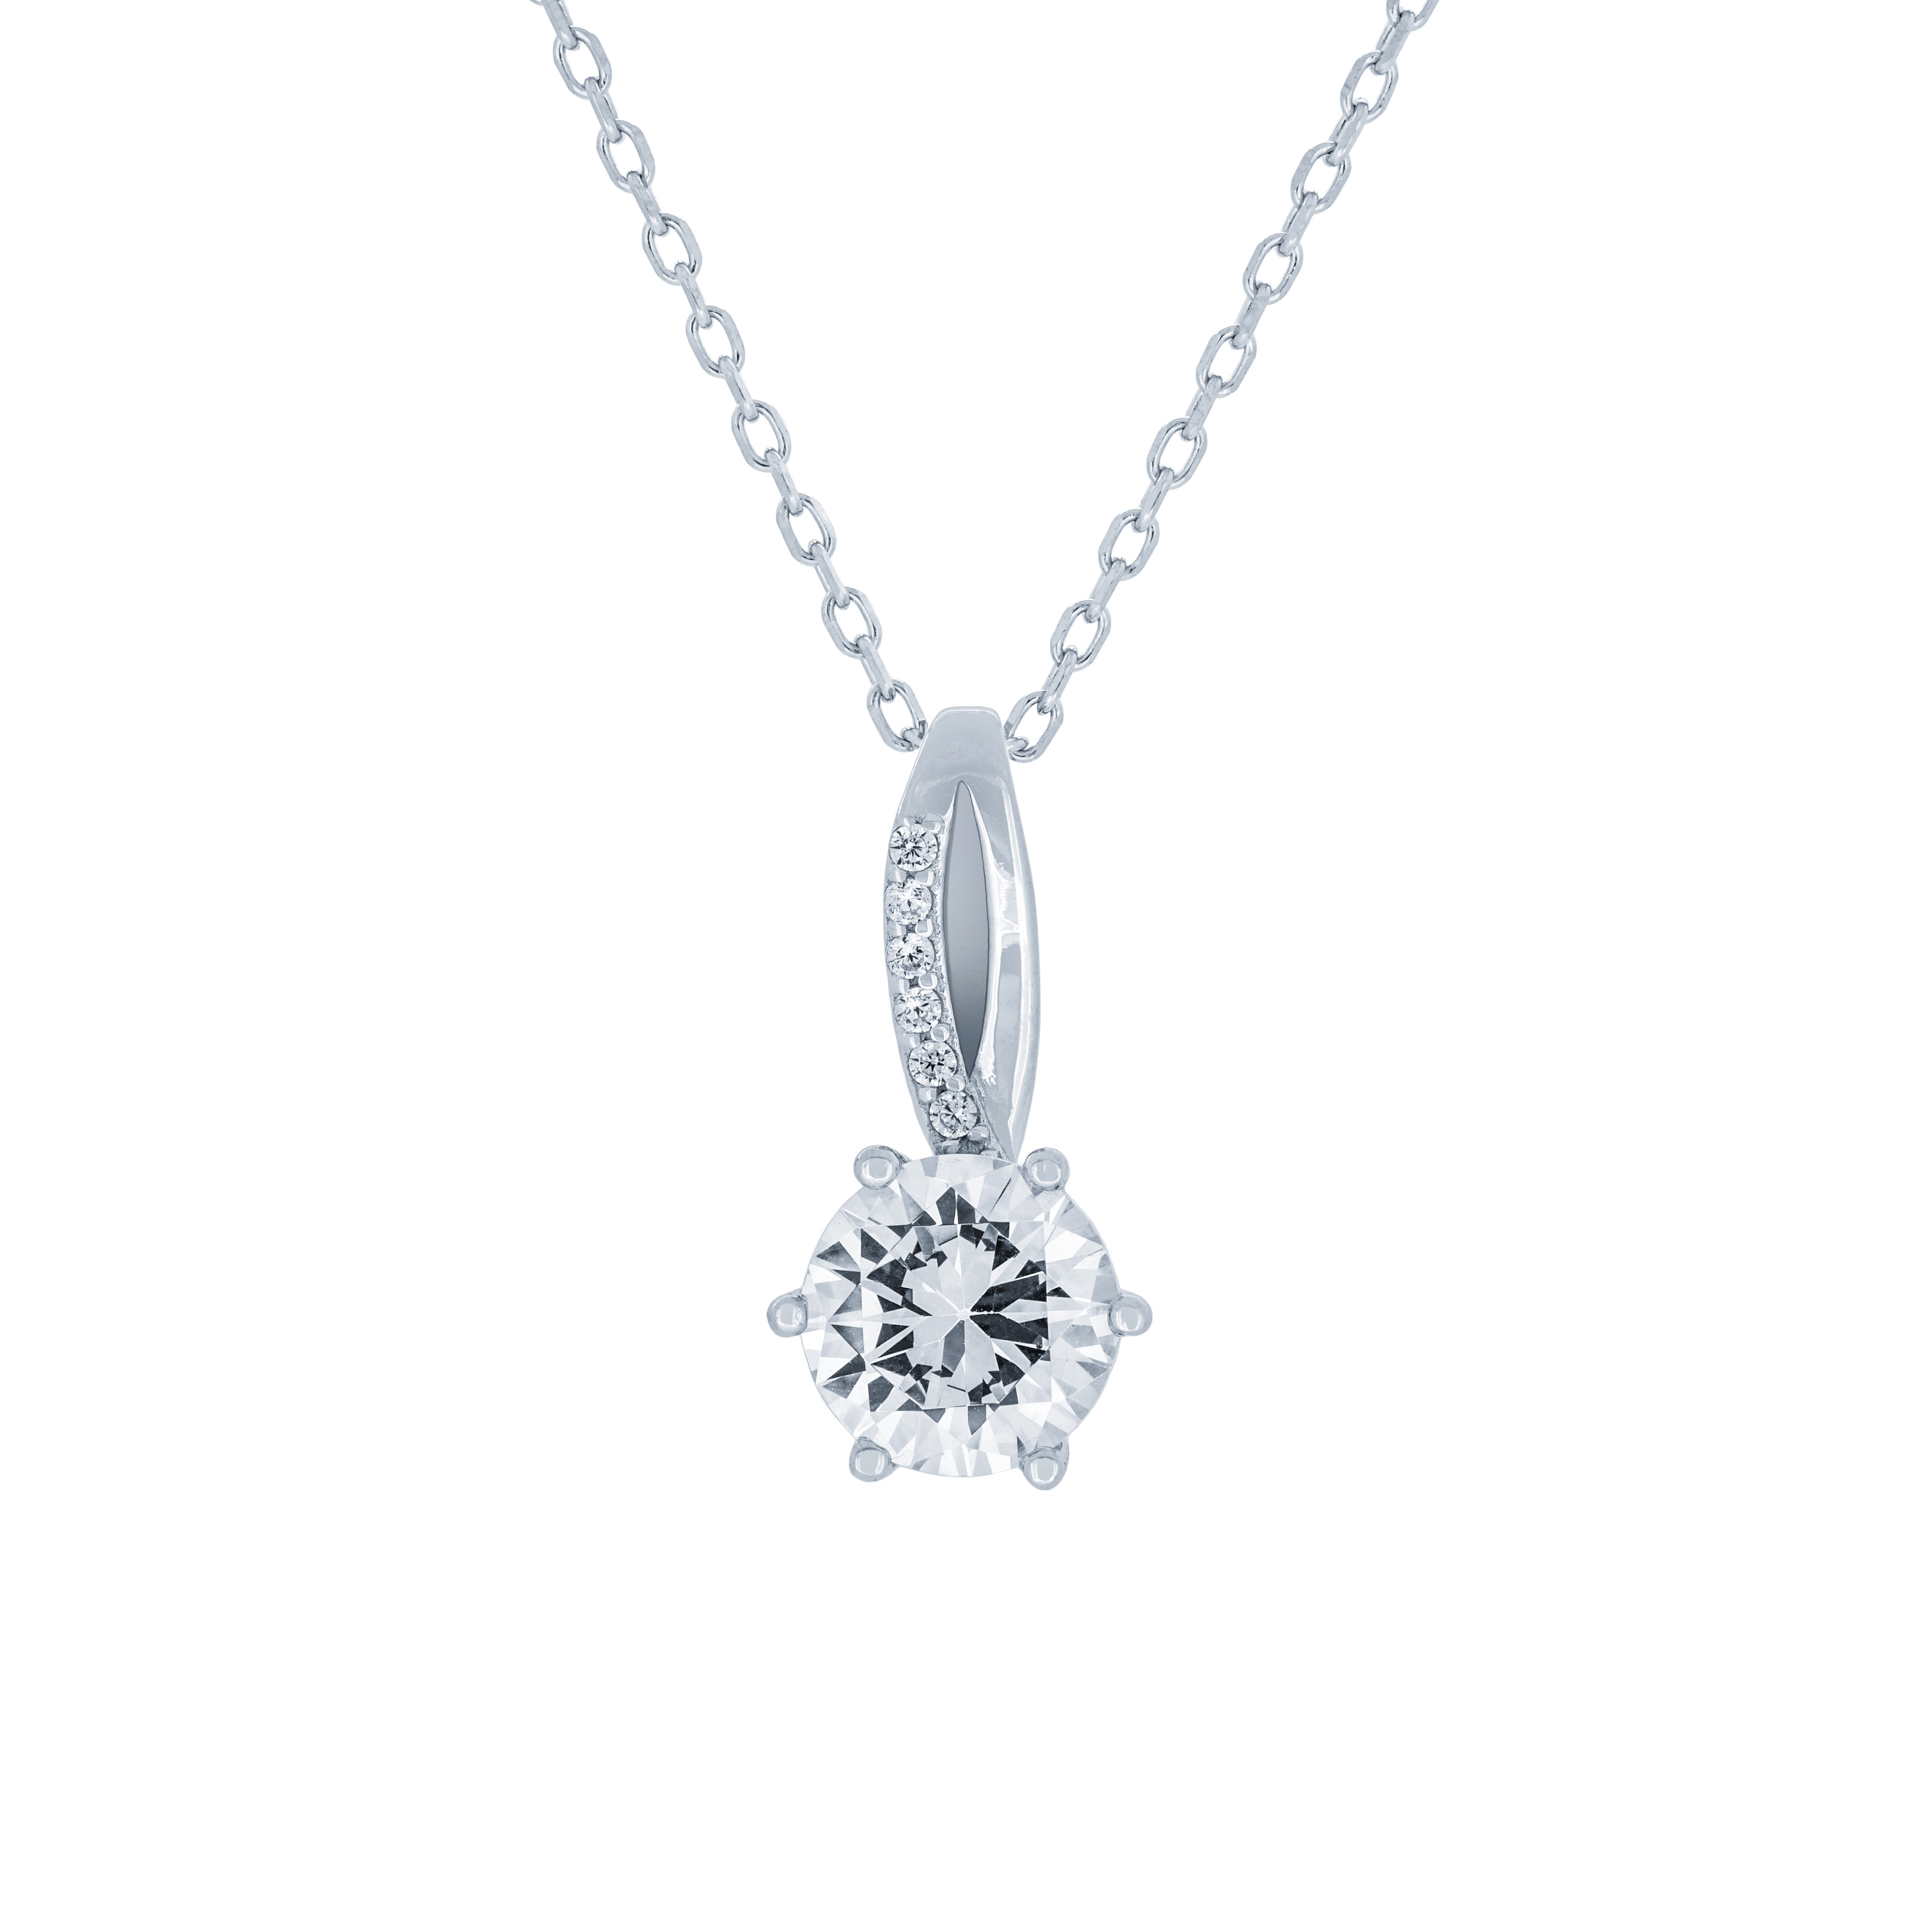 (100121) White Cubic Zirconia Pendant Necklace In Sterling Silver